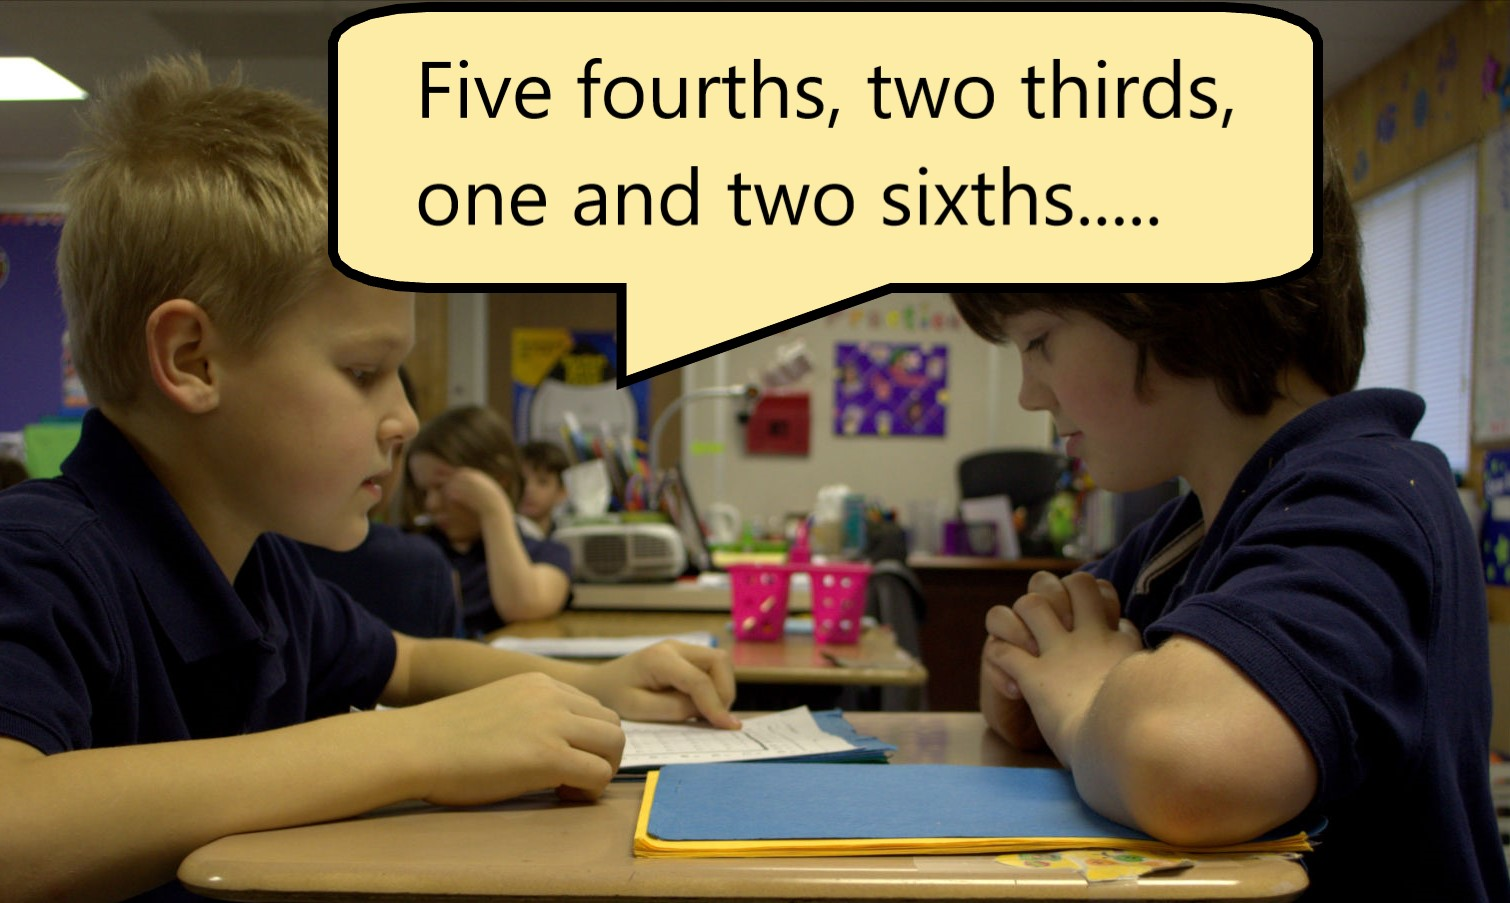 Two students are playing 2nd grade math games in class by asking each other a math question and testing each other.